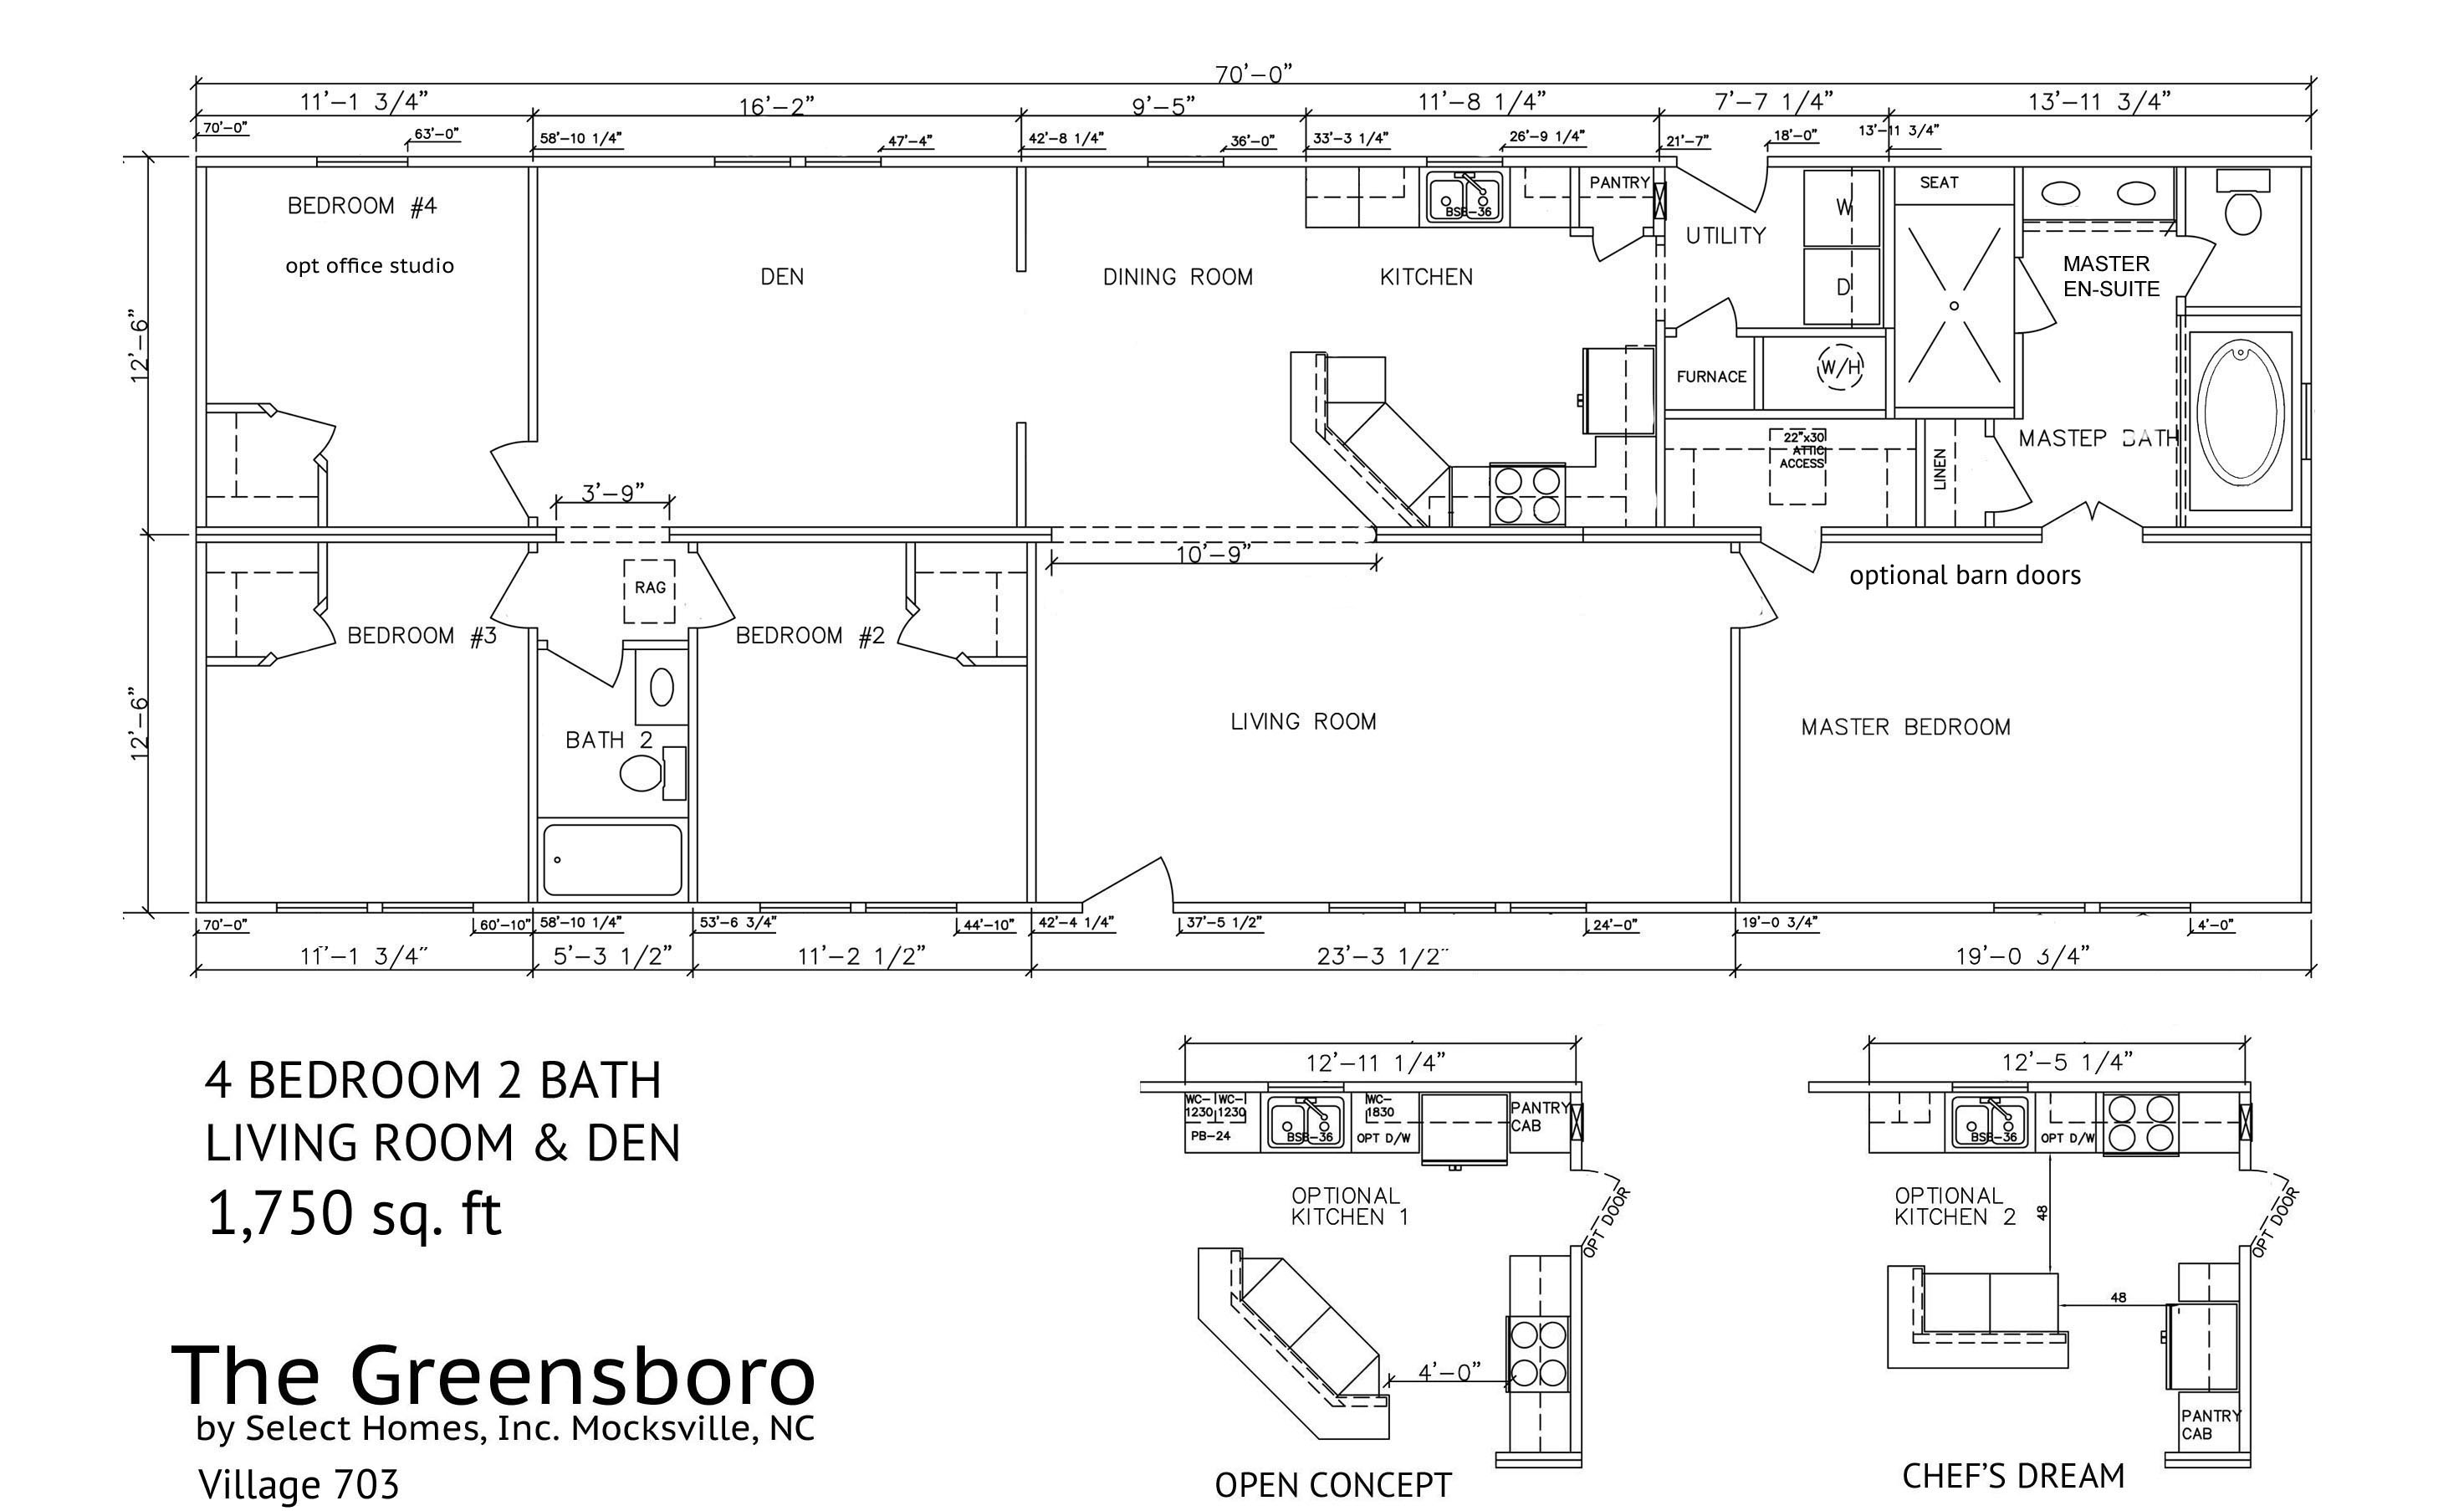 The Greensboro floor plan